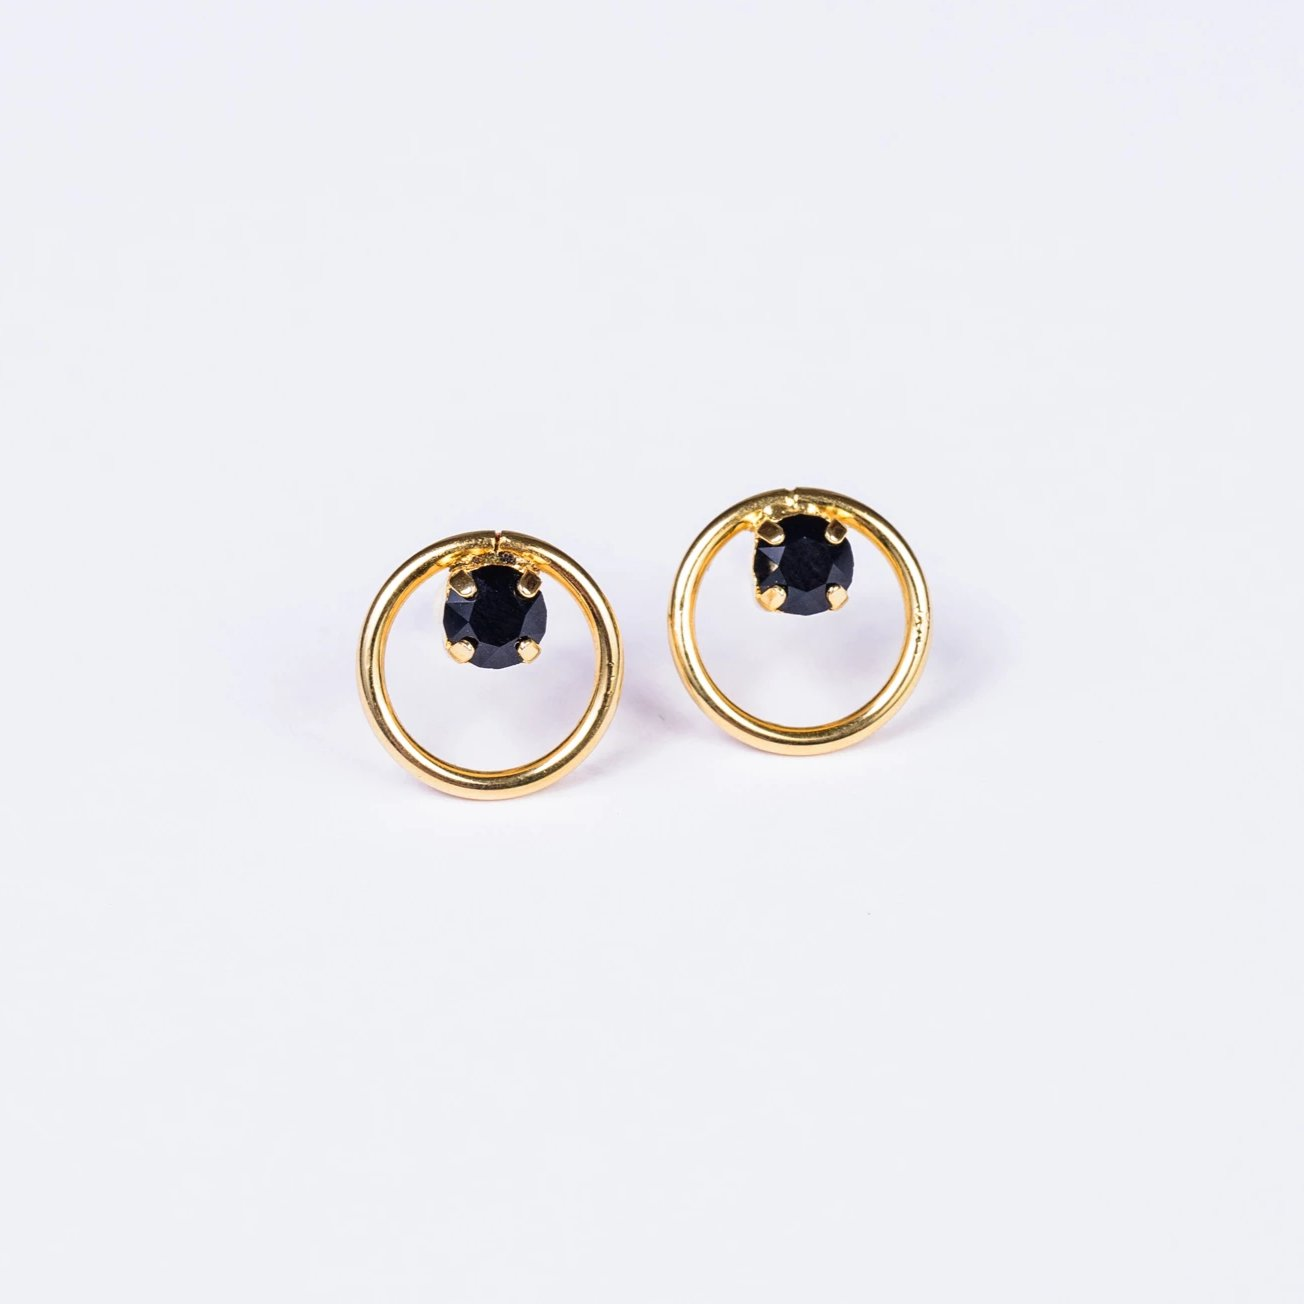 Loop Earring in gold tone - ViaRothstein